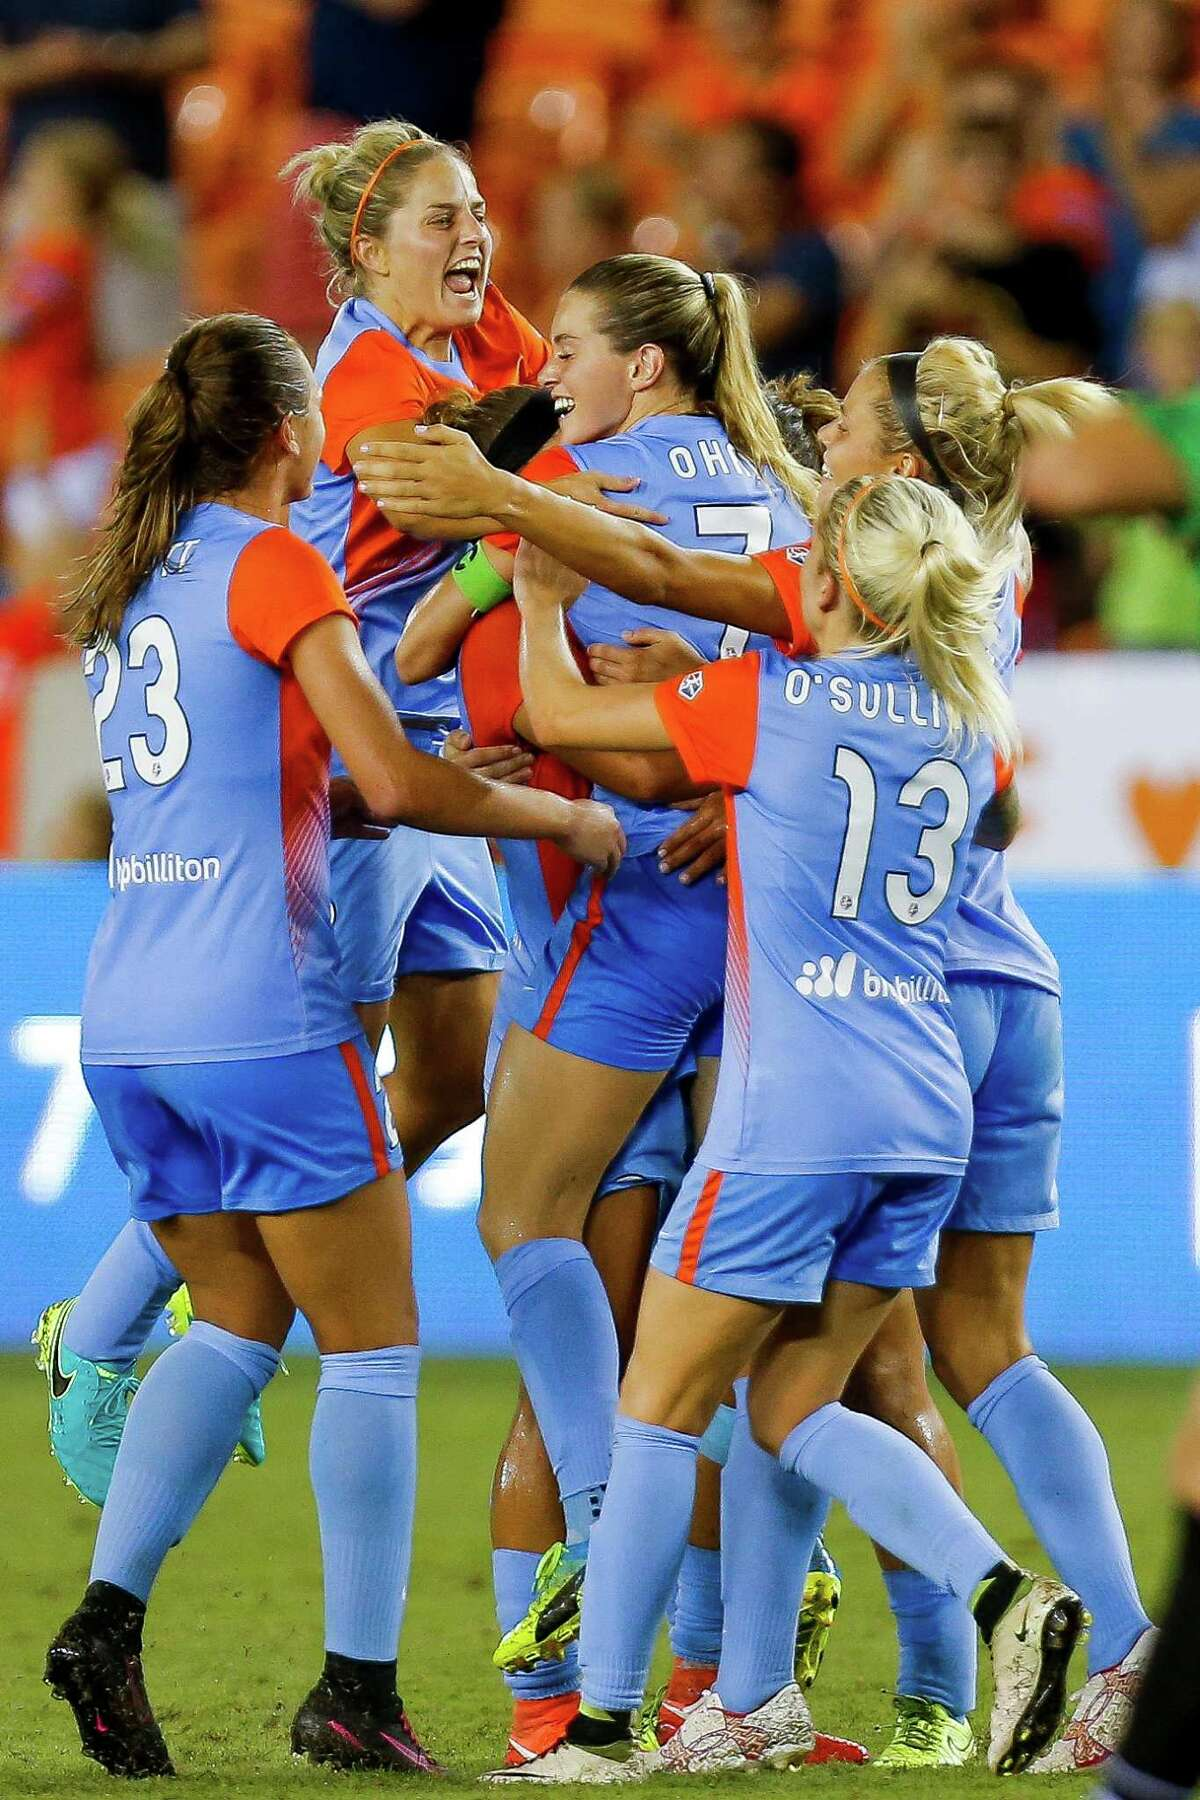 Teammates congratulate Houston Dash forward Kealia Ohai (7) after she scored her second goal of the game as the Houston Dash tie 3-3 with the Western New York Flash Saturday, July 30, 2016 in Houston.